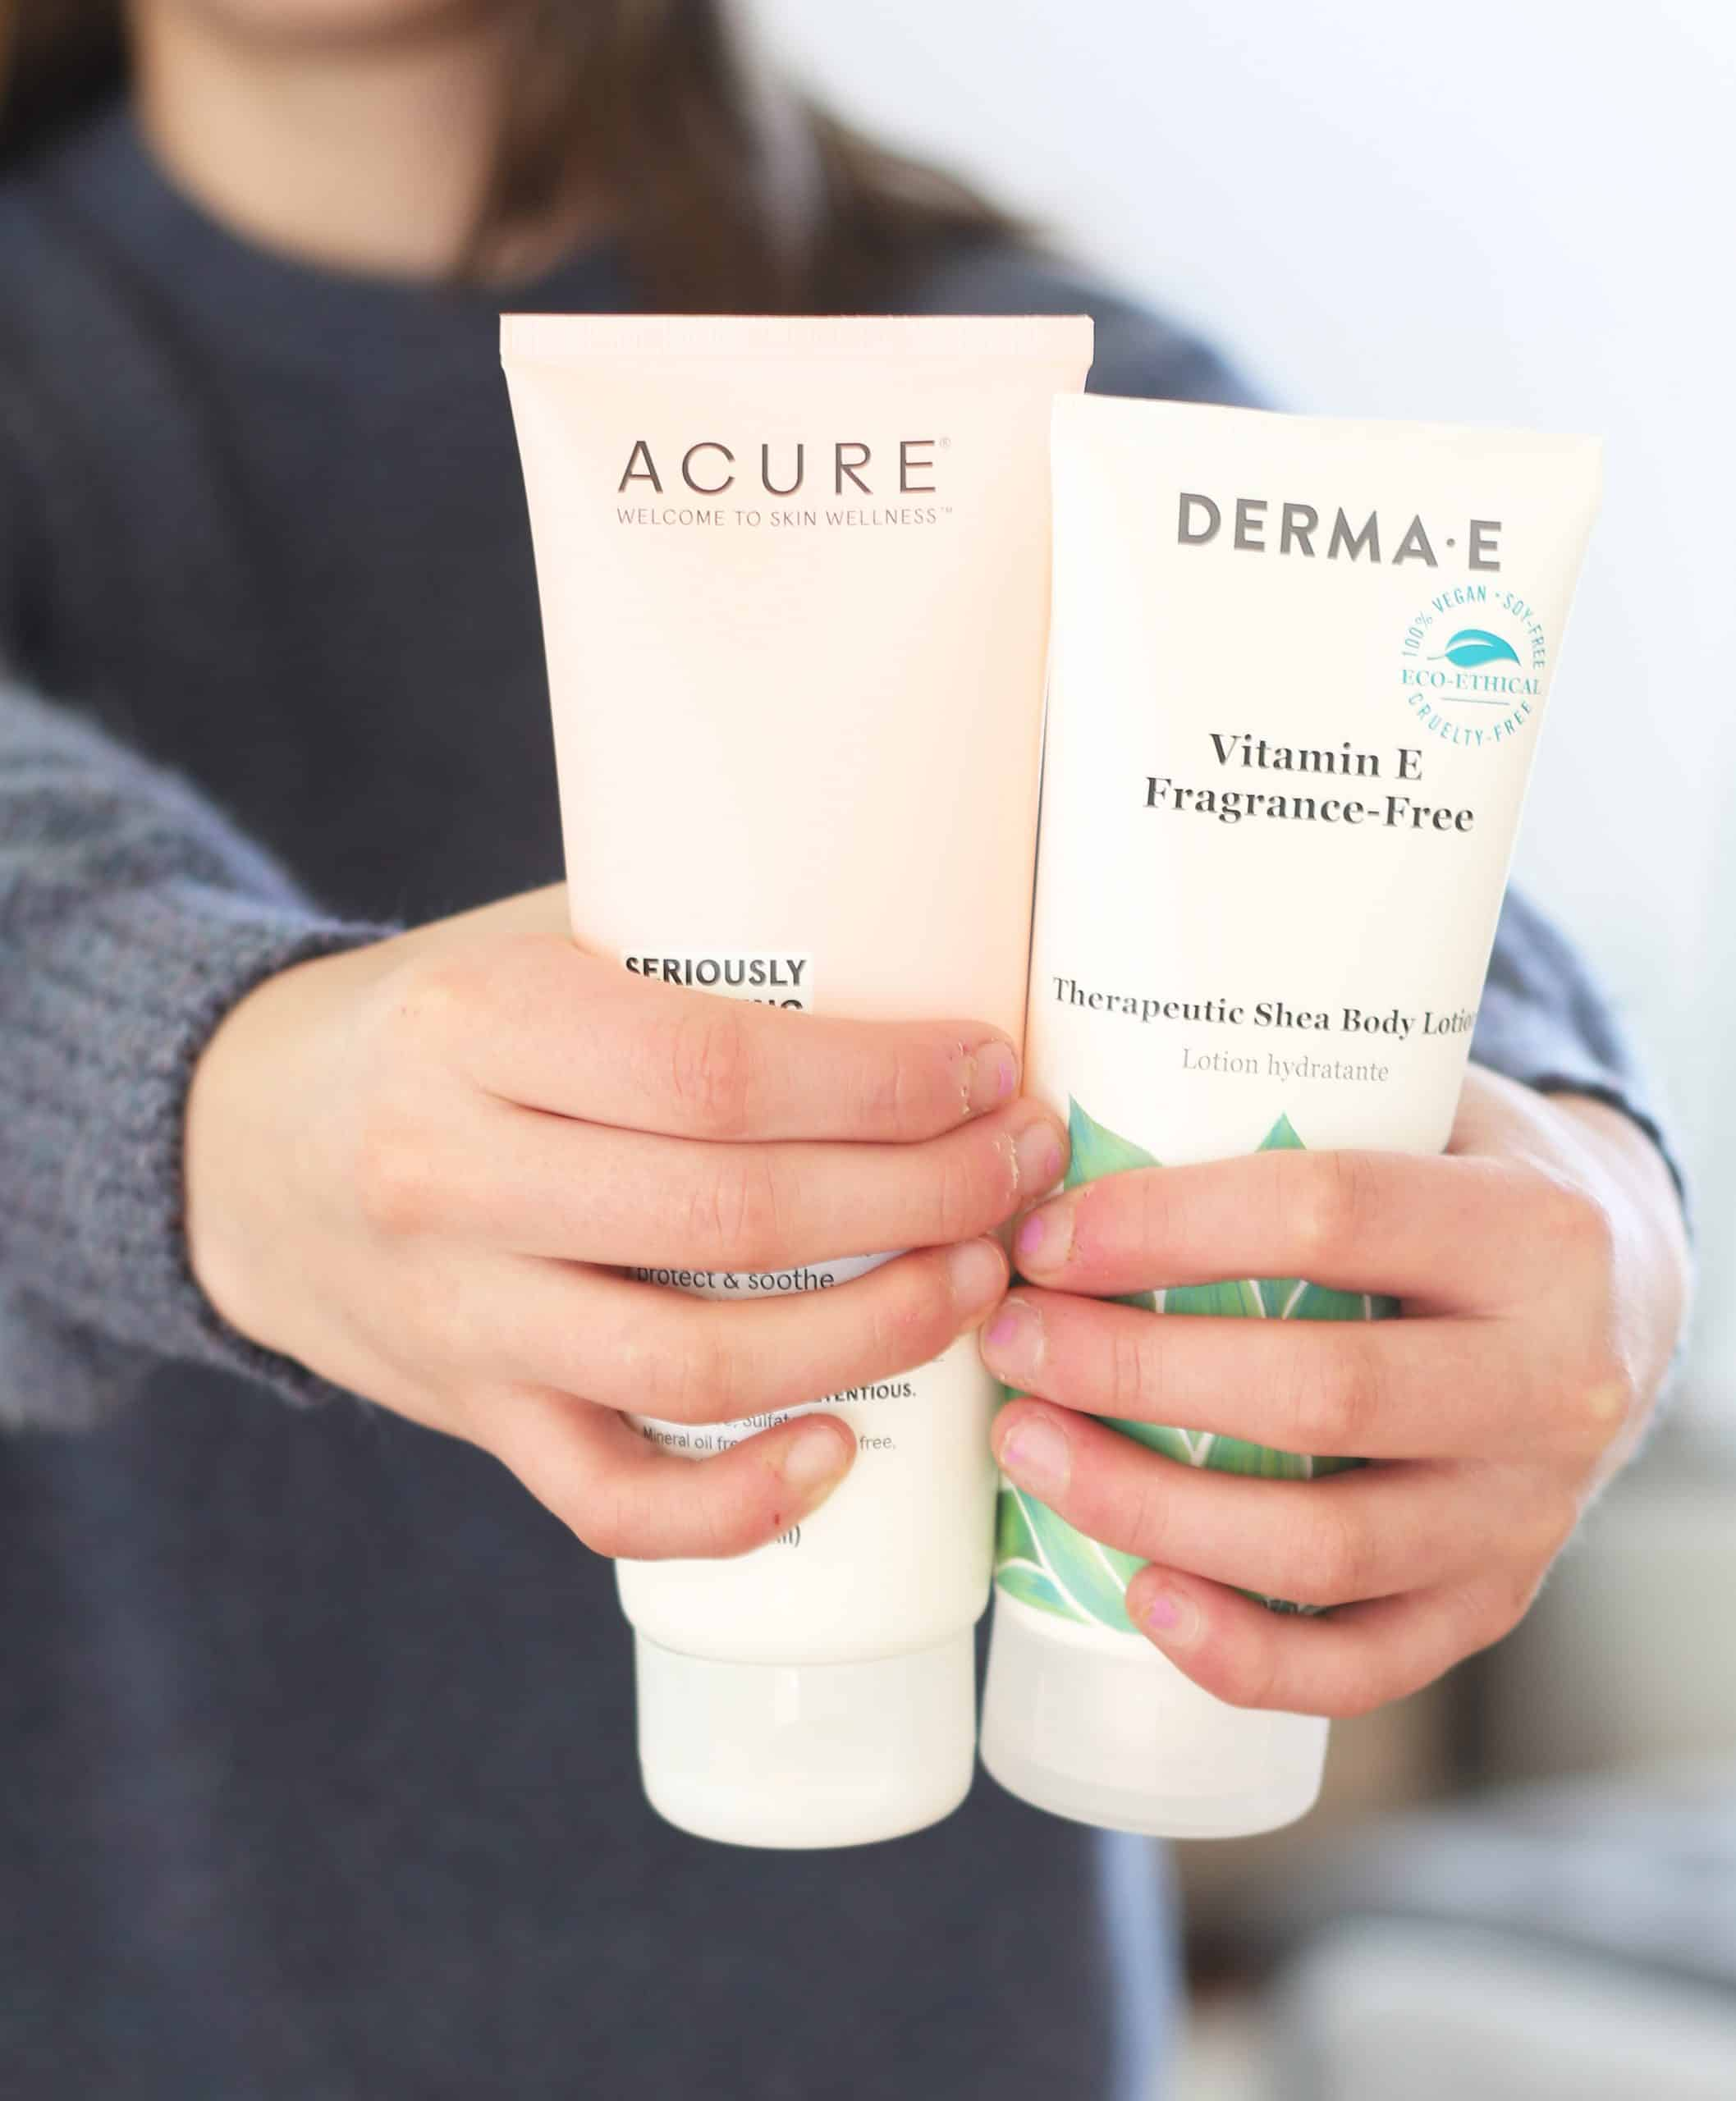 Lotion for dry hands- Acure and Derma E